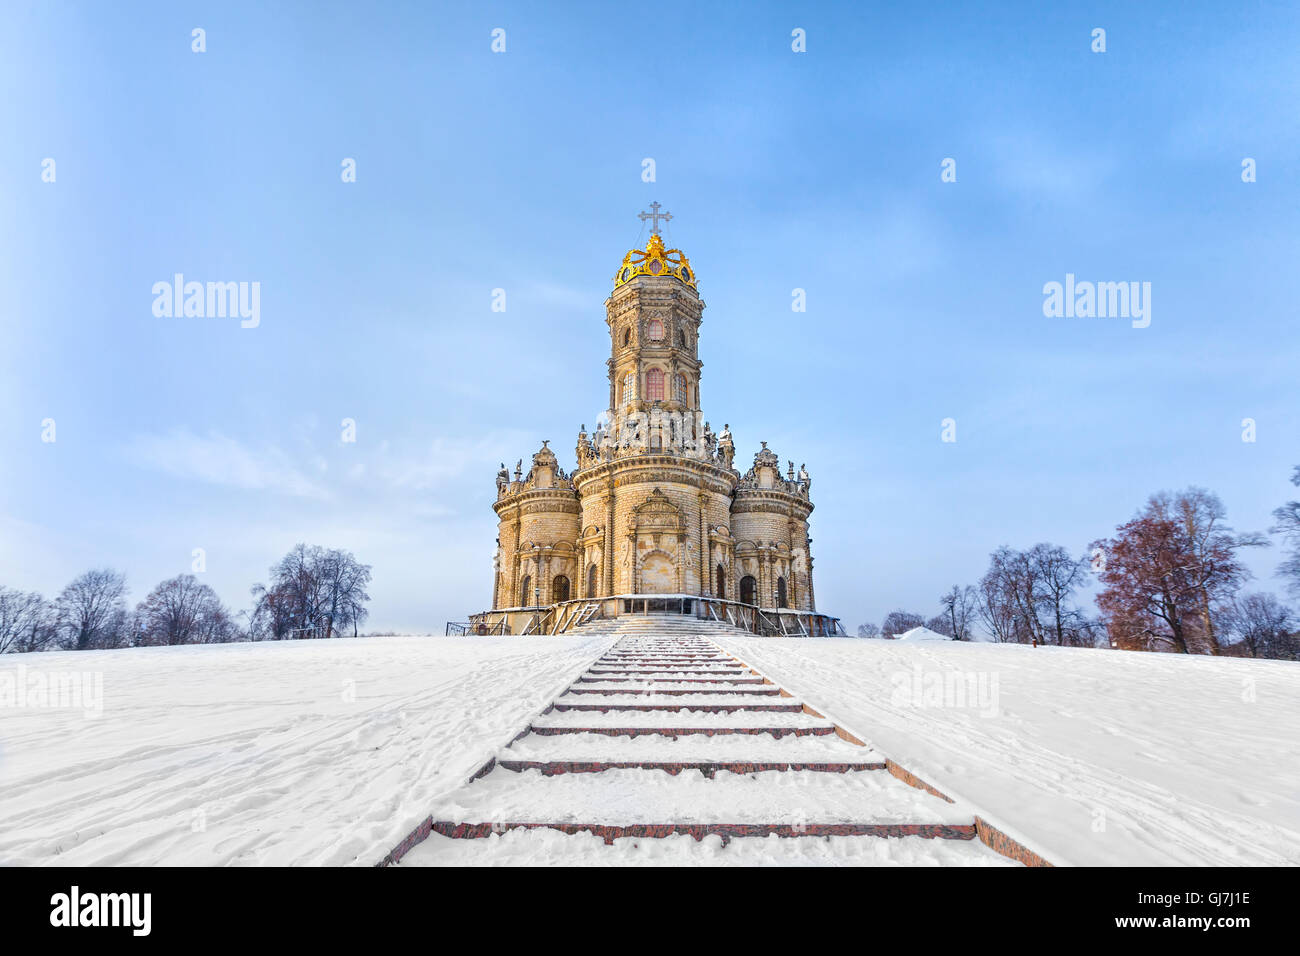 Znamenskaya church in Dubrovici in winter, Moscow region, Russia - Stock Image